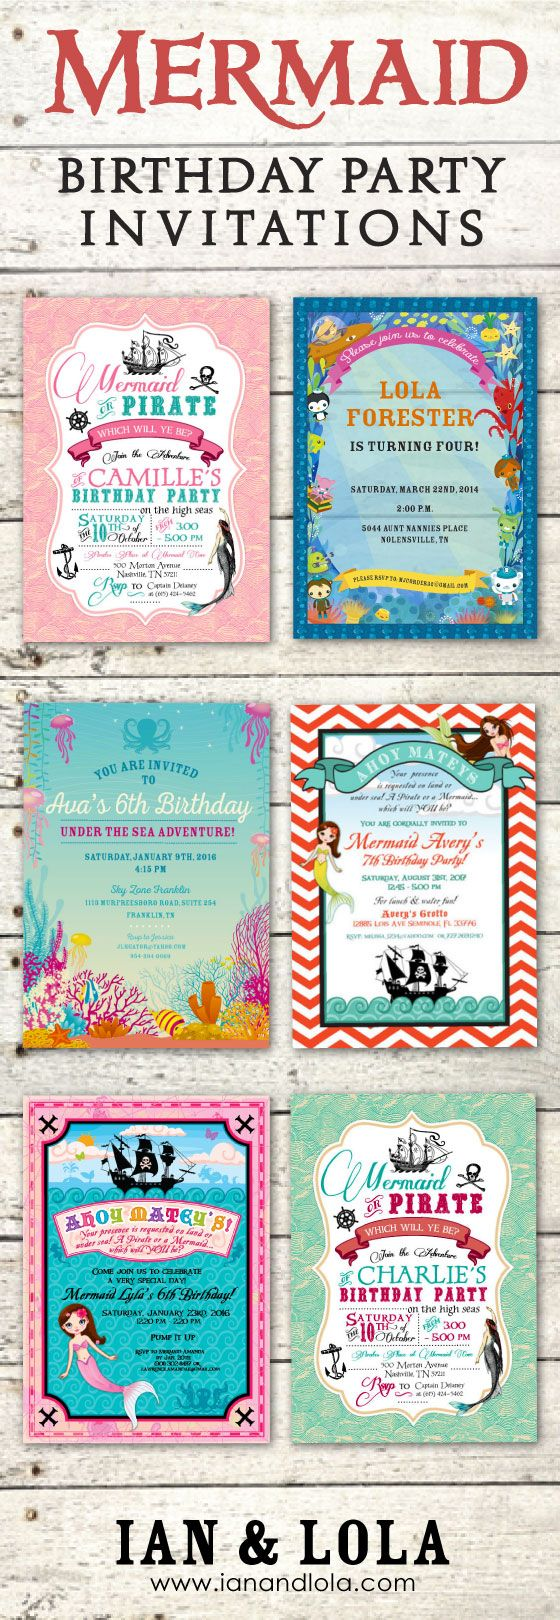 Unique and customizable mermaid and pirate party invitations at Ian and Lola. Purchase a customized digital DIY file or we print them for you on premium matte card stock. Add a photo, change the color scheme and graphics for no additional charge. Bespoke or fully custom designs available for $25.